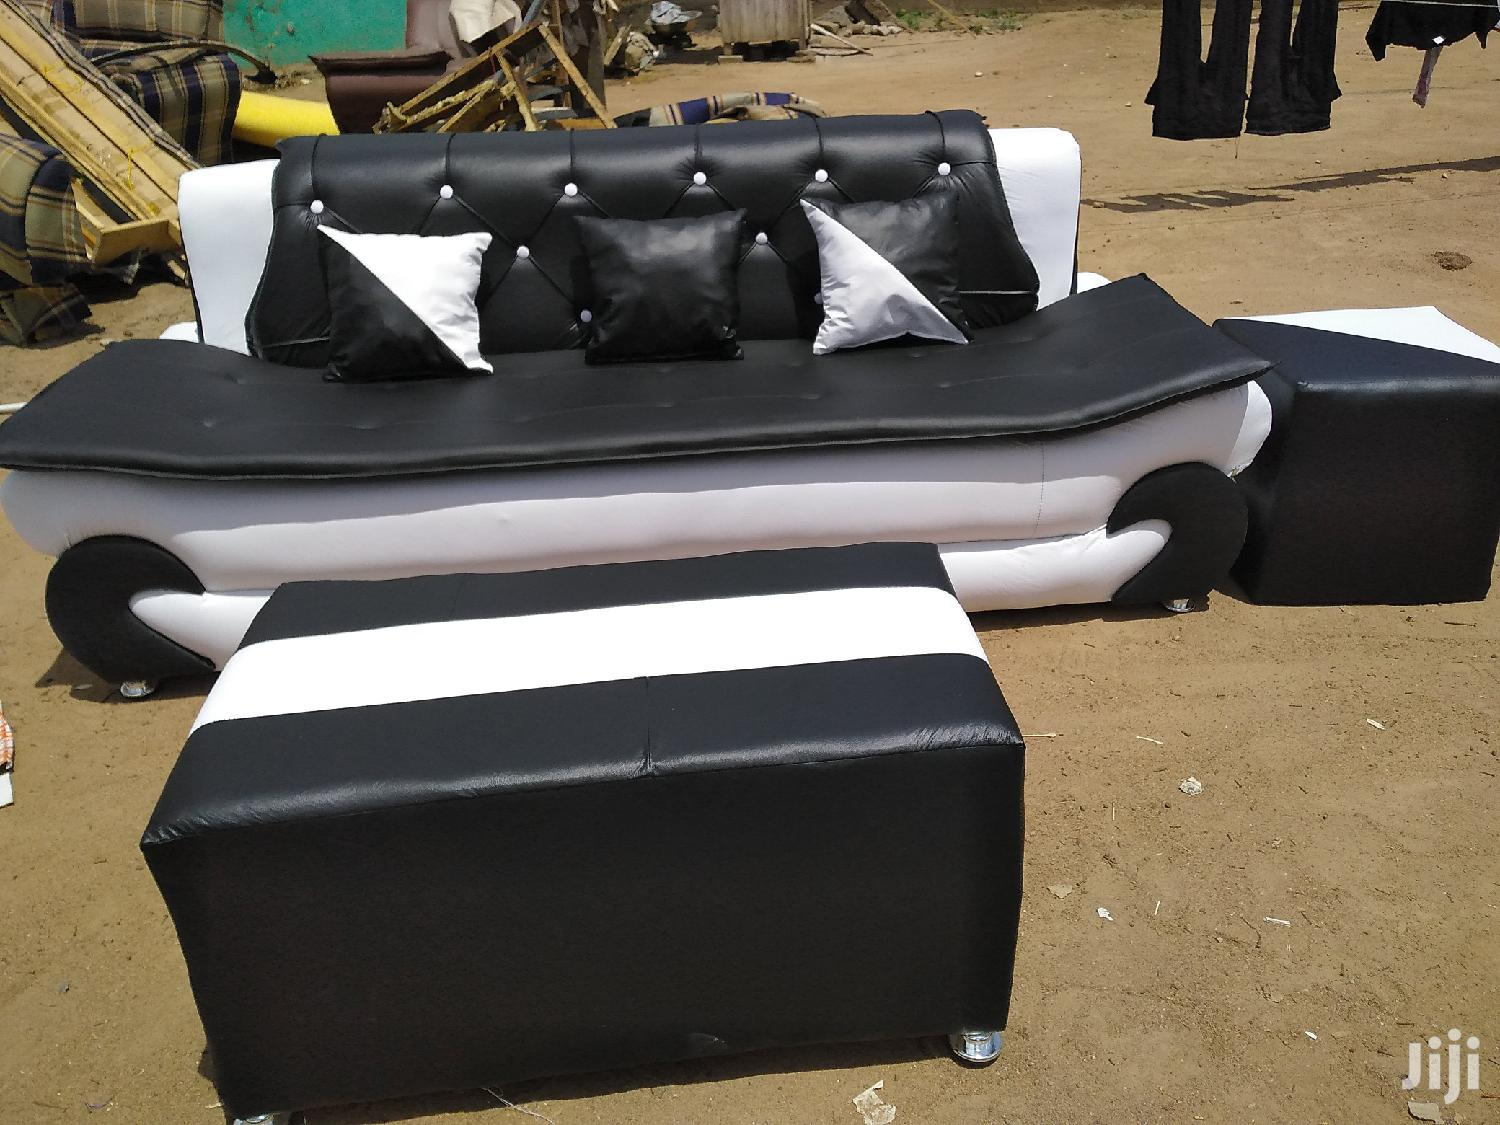 Emmanuel Leather Sofa   Furniture for sale in Agbogbloshie, Greater Accra, Ghana